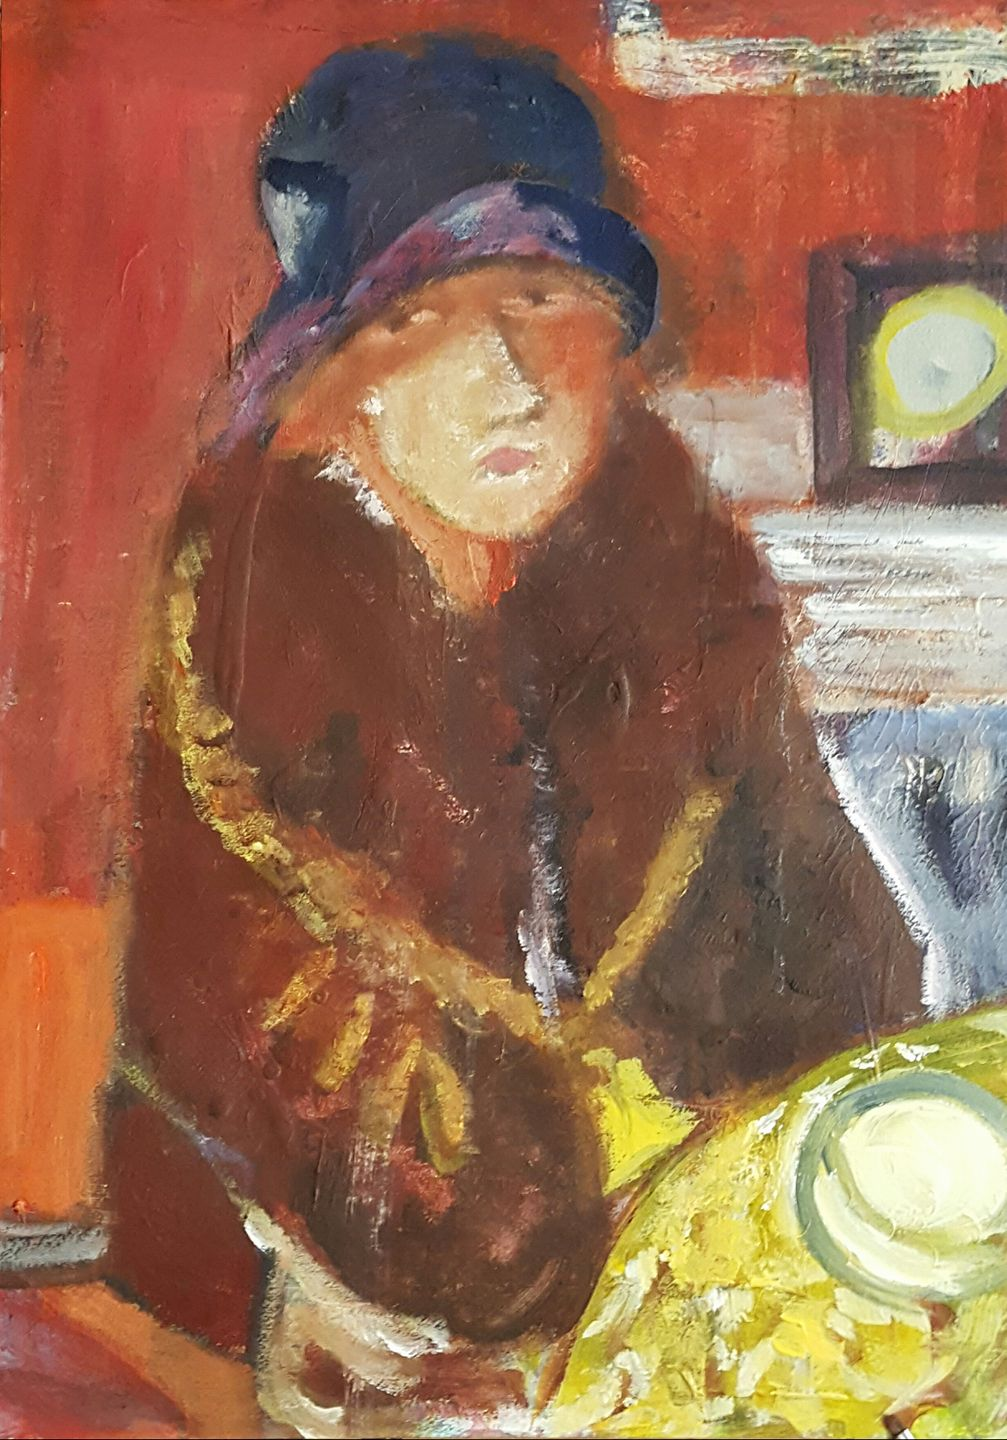 untitled_study on Bonnard_18x24 acrylic on paper